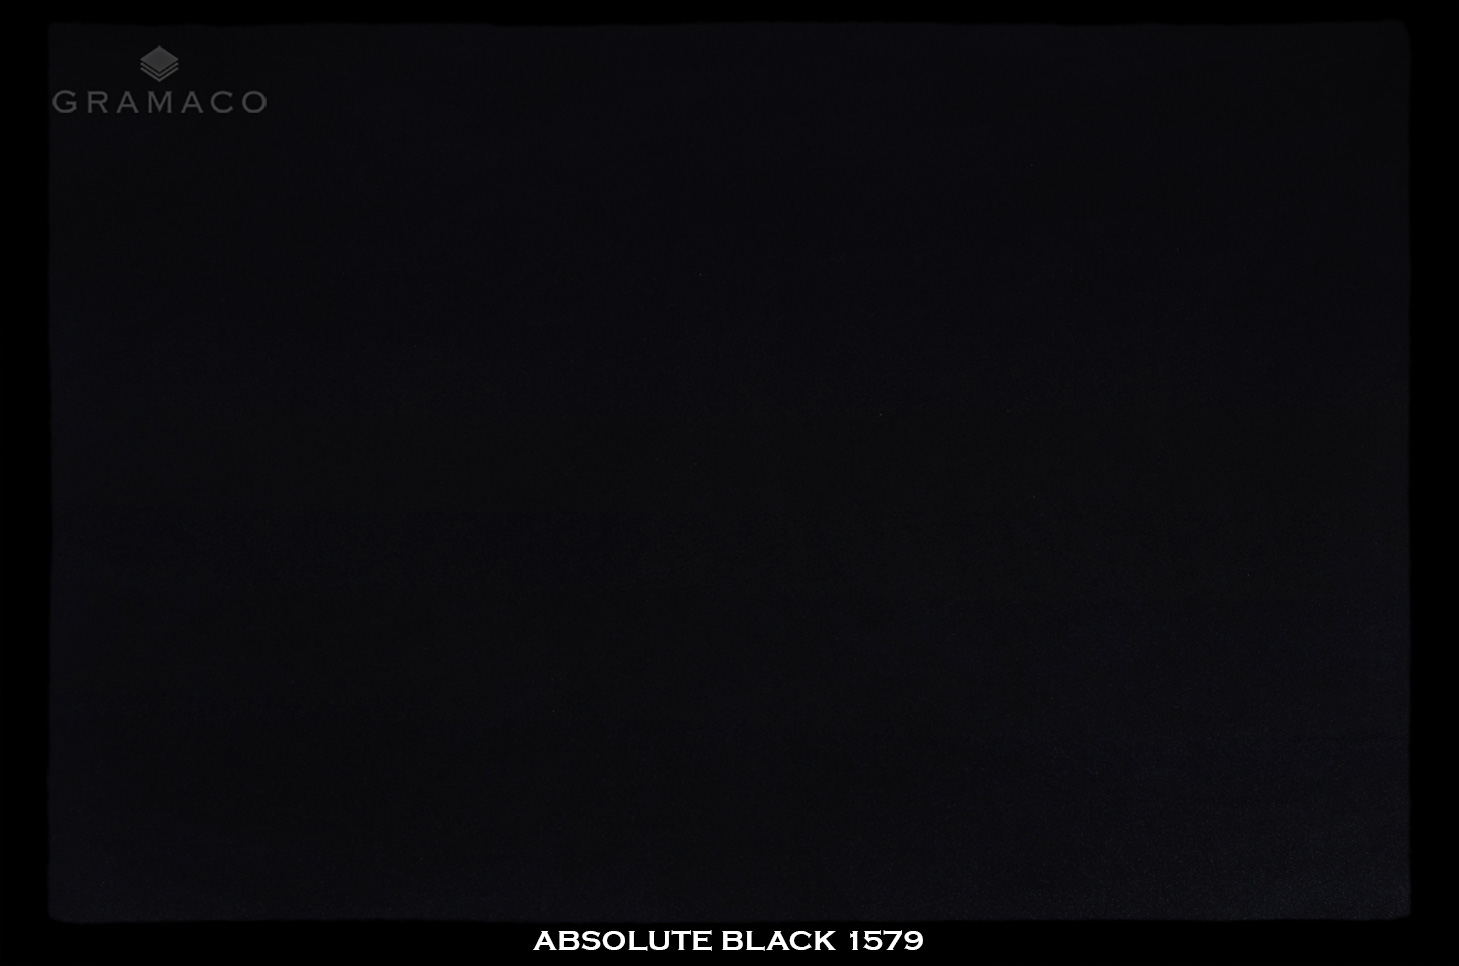 Absolute-Black-1579-slab